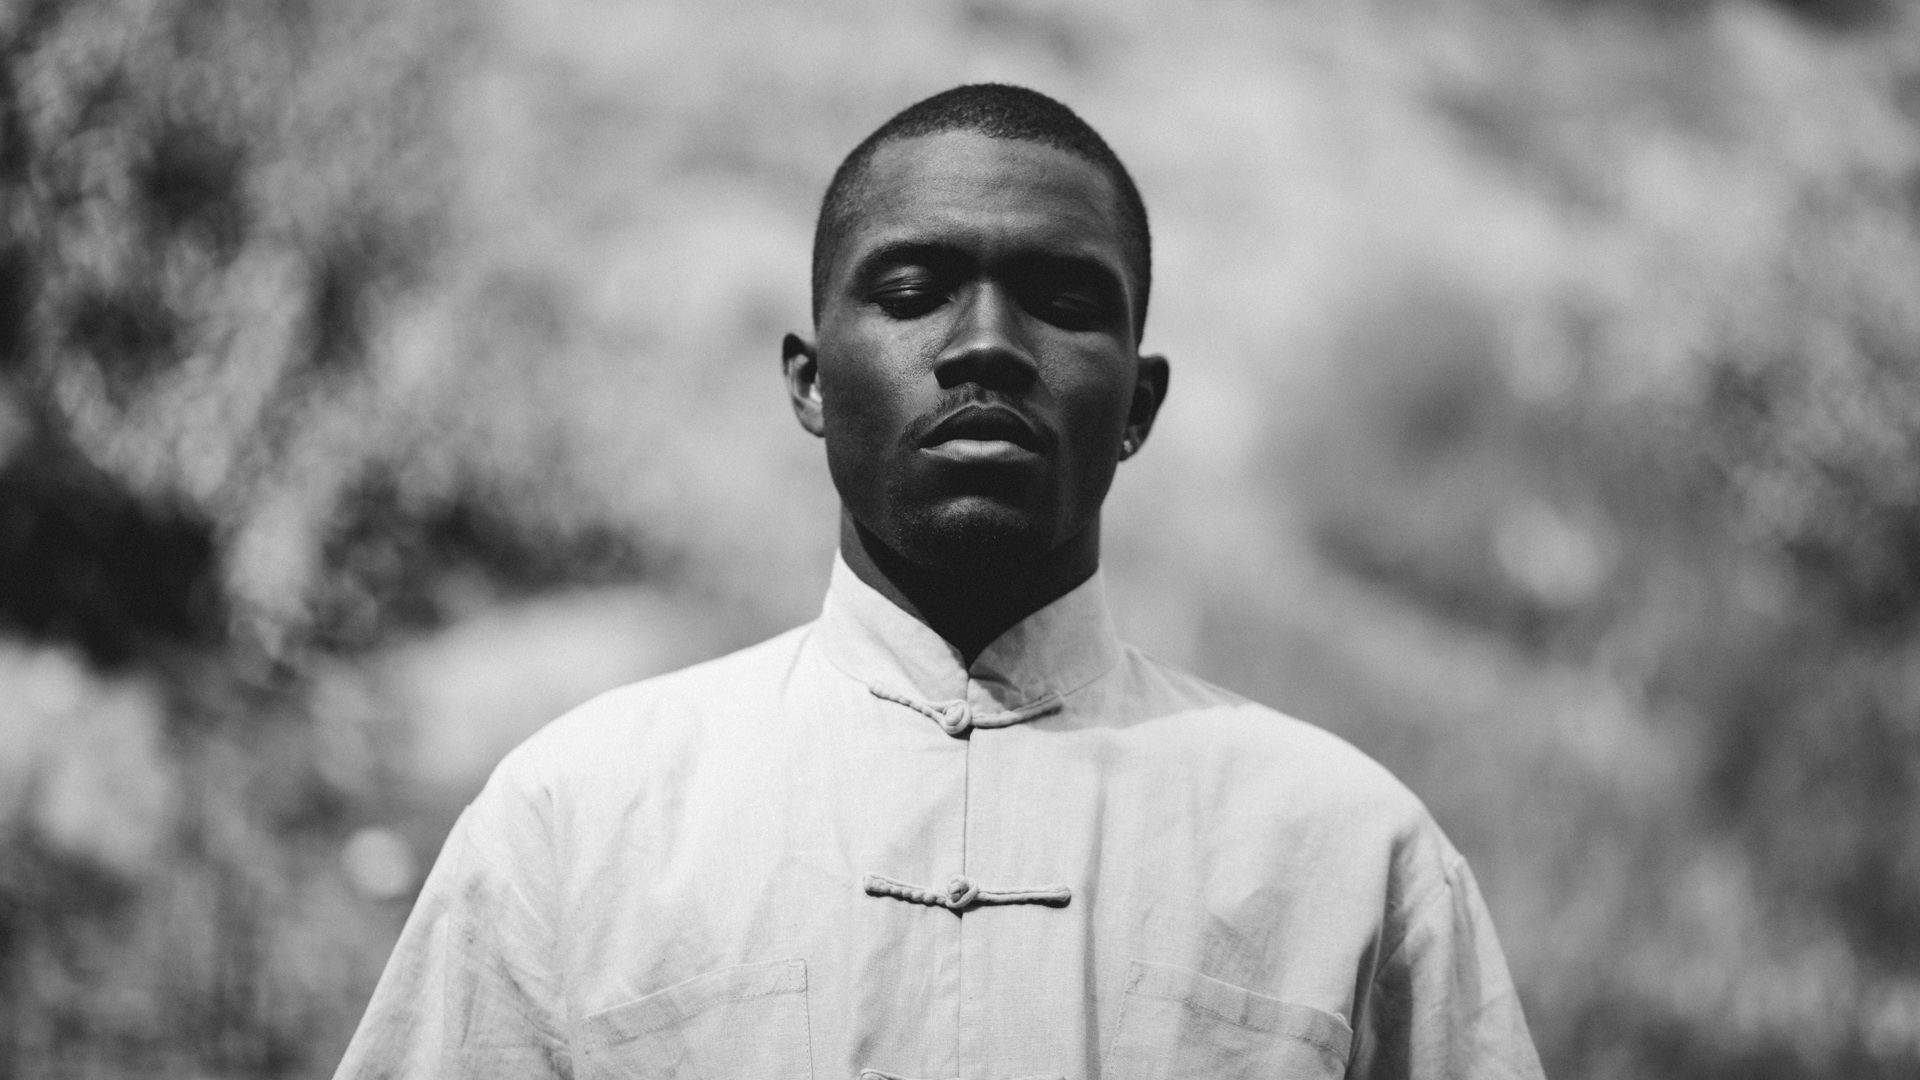 Frank Bank Wallpapers frank ocean x hd wallpaper ImageBank biz